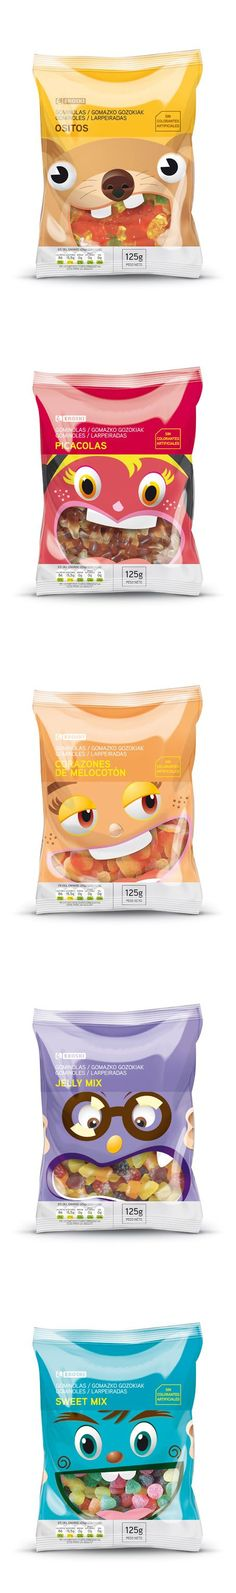 EROSKI snacks for the packaging smile file : ) Curated by Packaging Diva